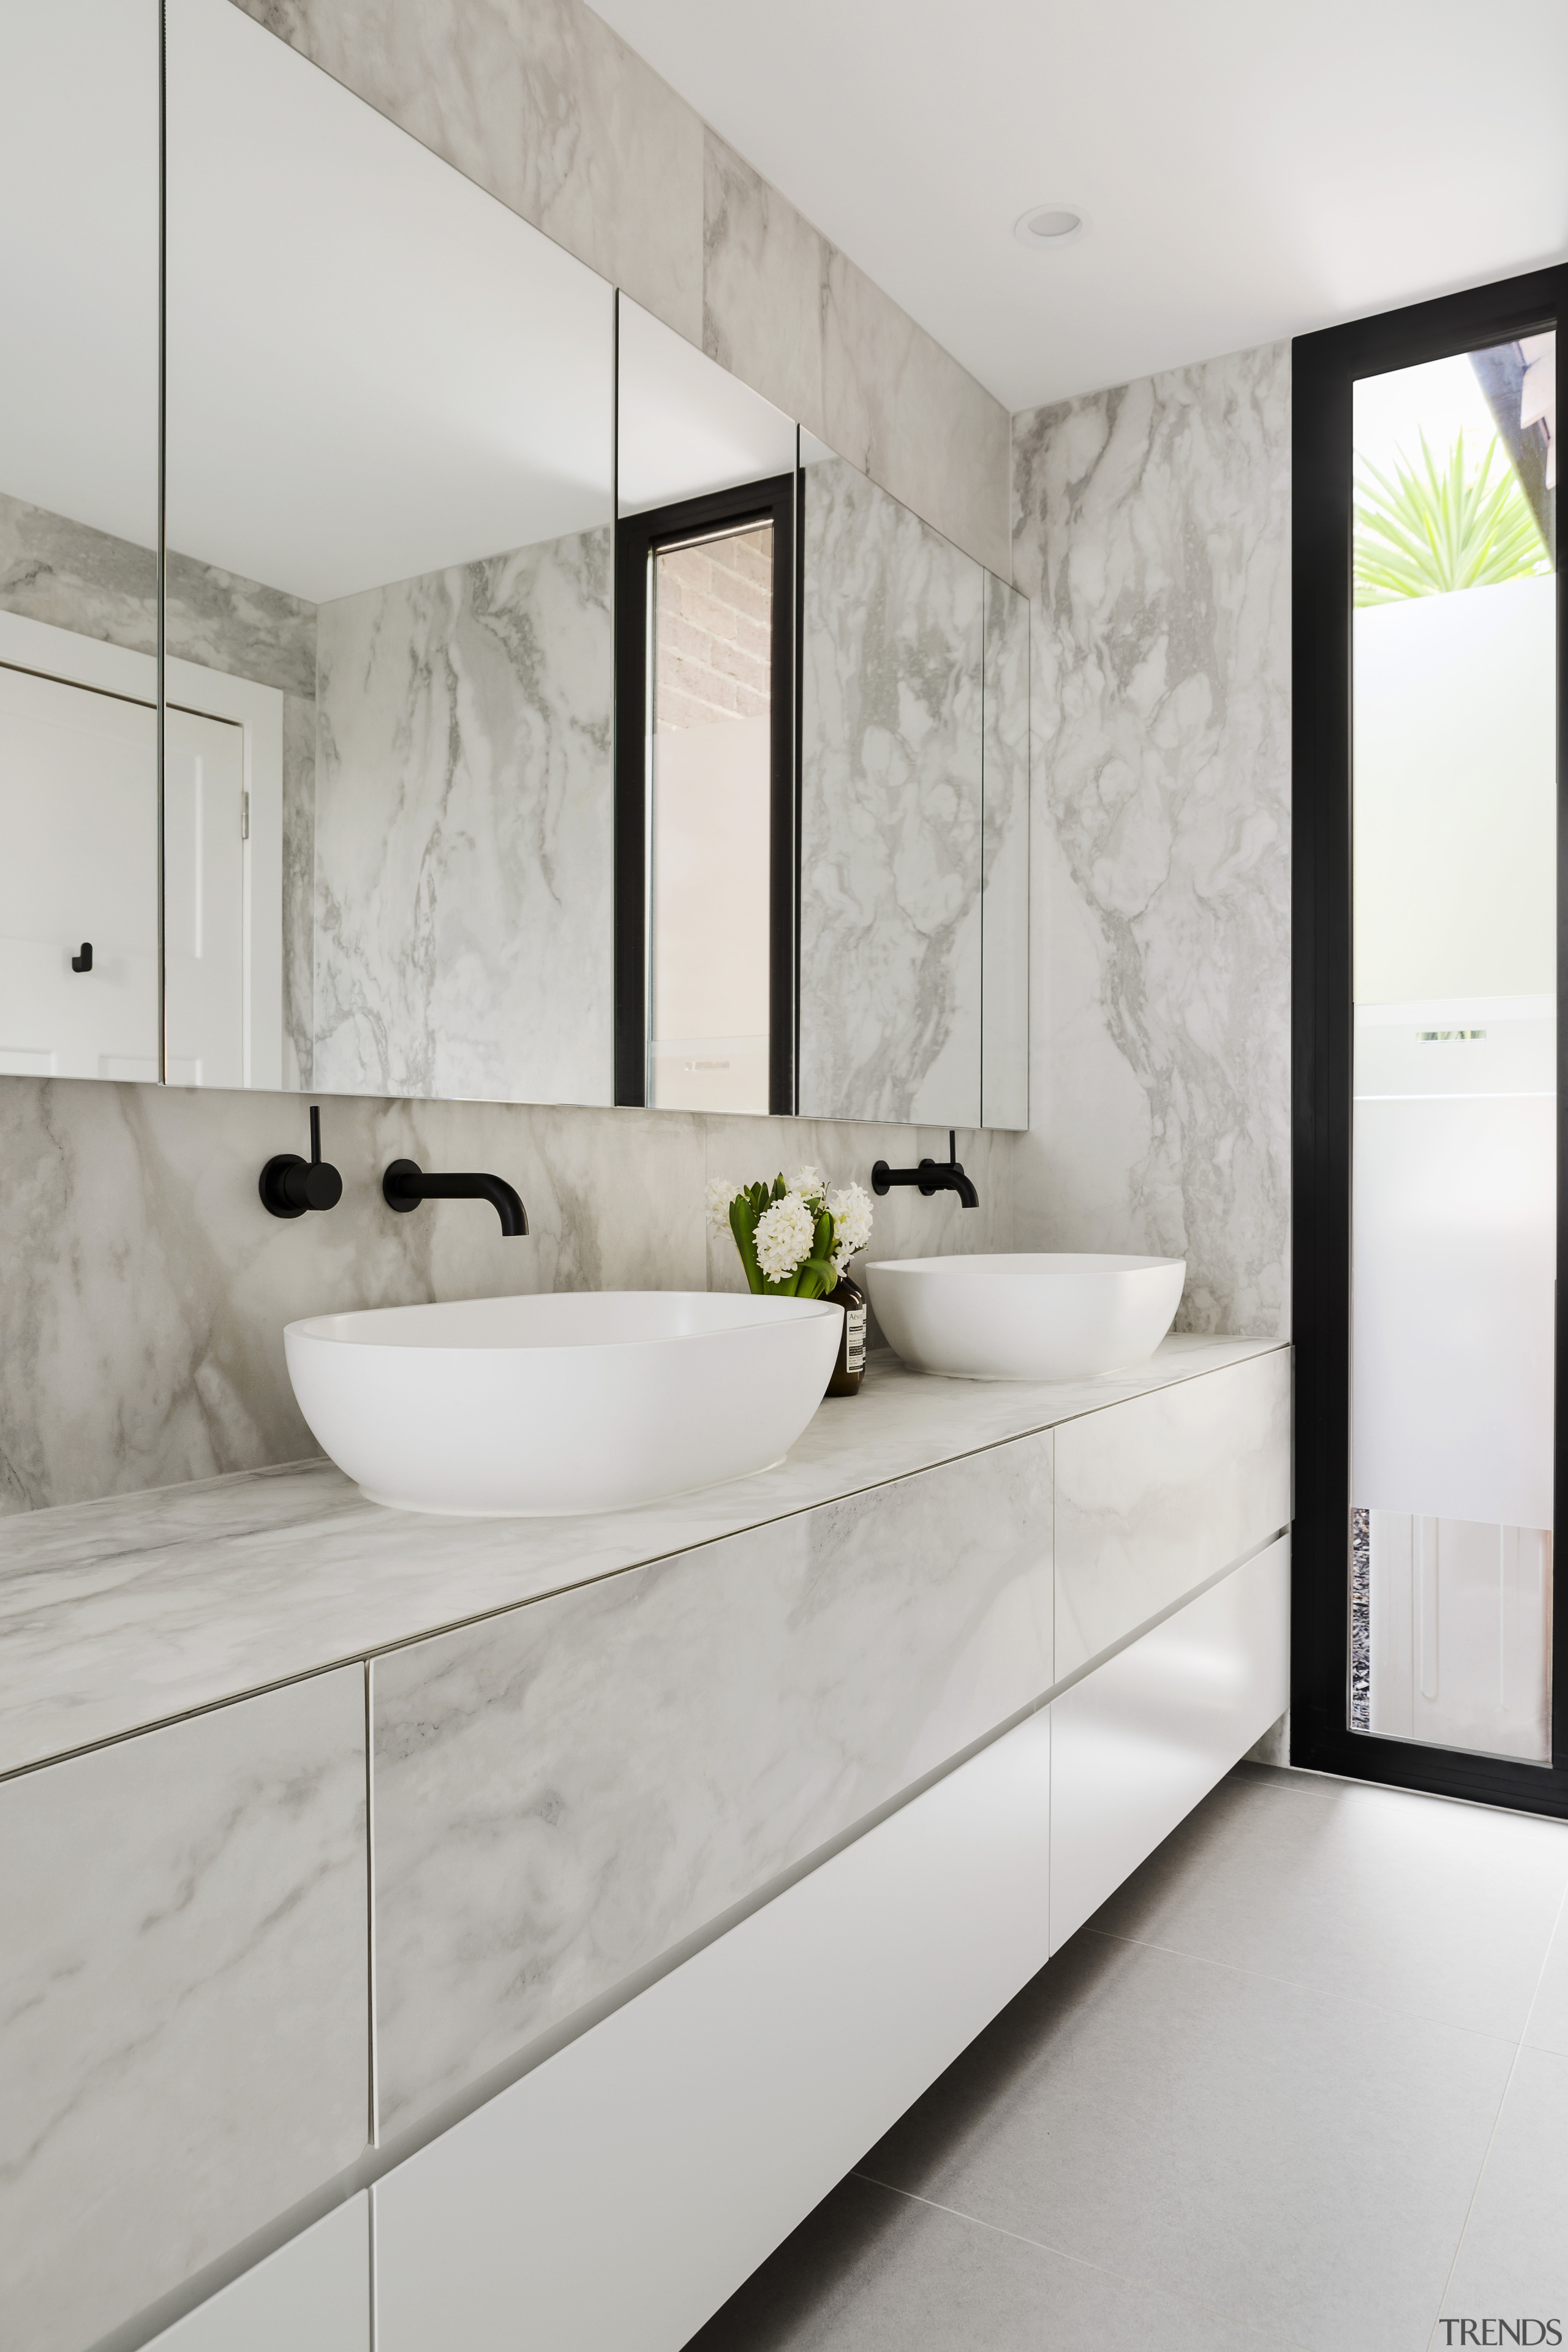 Bathroom designed by architect Linda Simmons – see bathroom, countertop, floor, home, interior design, room, sink, tap, tile, gray